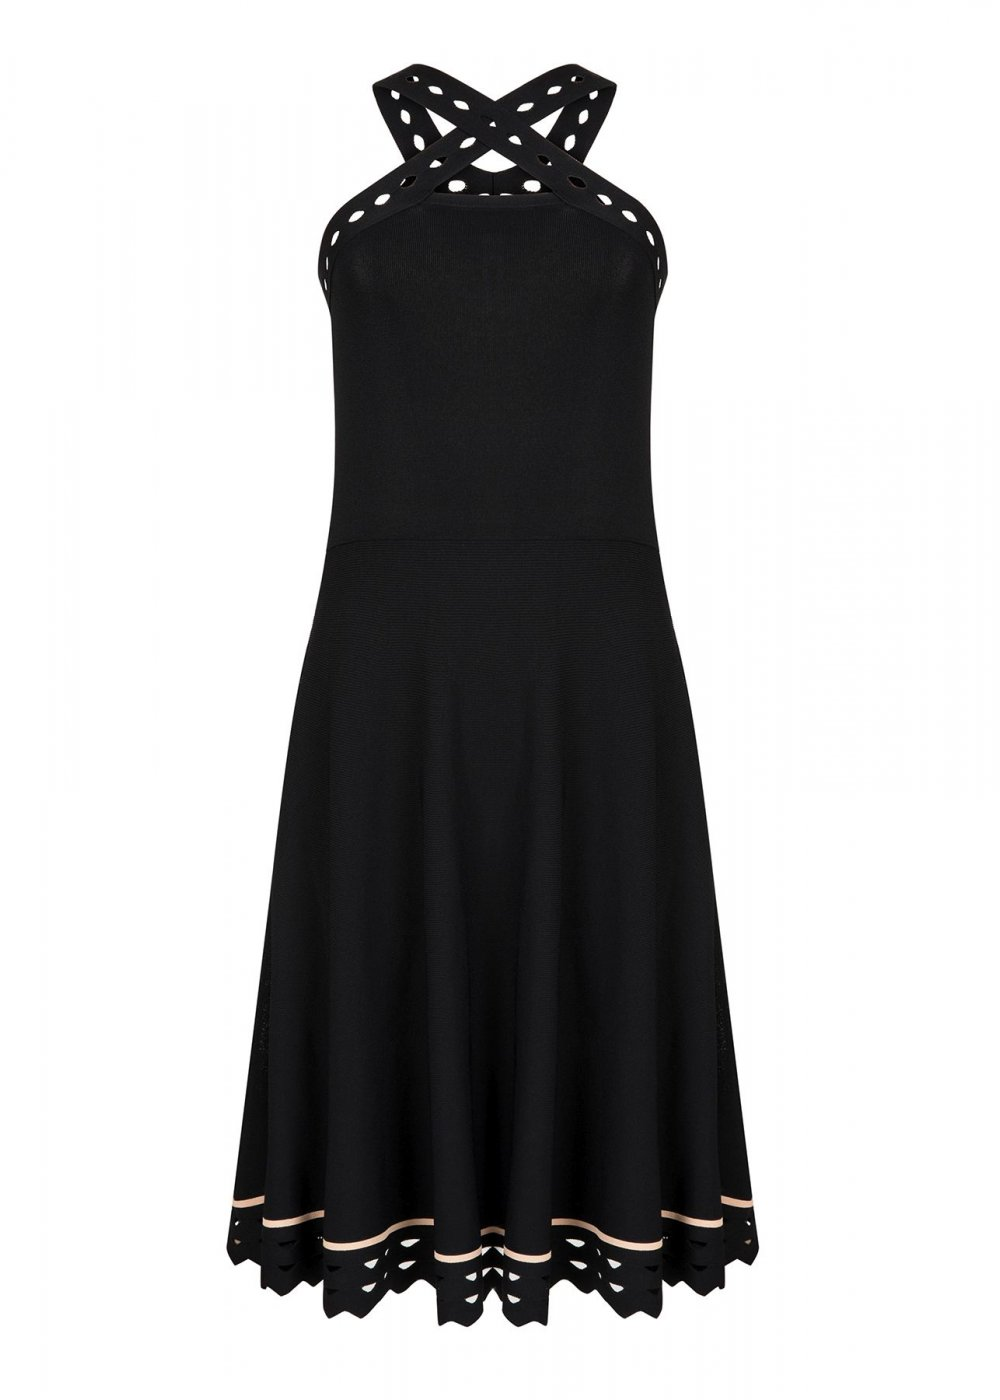 Sleeveless Cros Strap Black Knit Dress